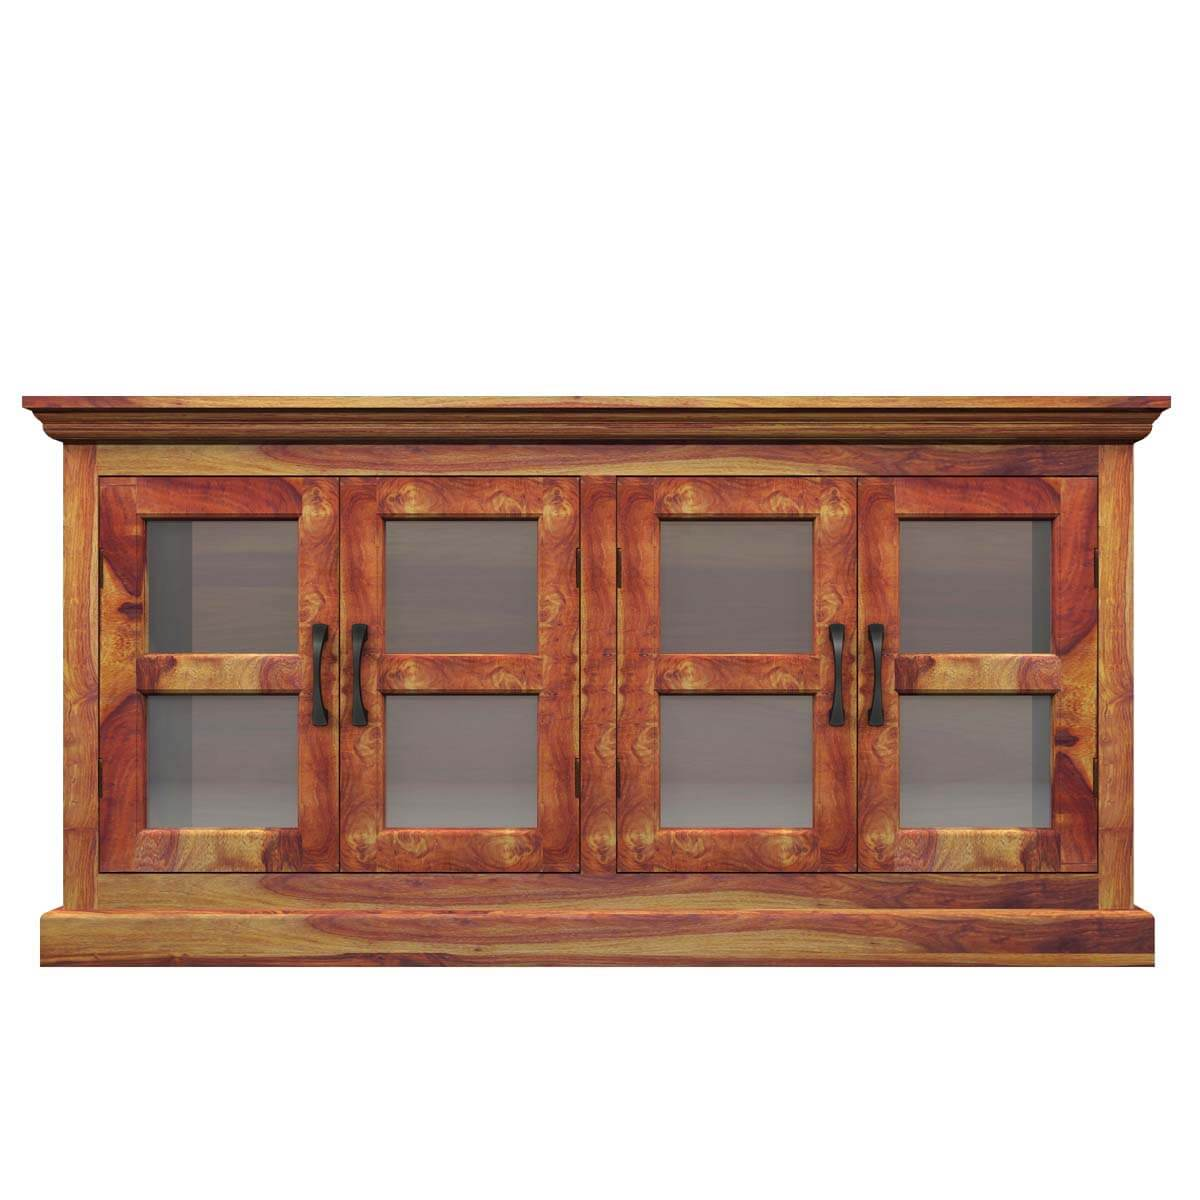 Dallas Ranch Solid Wood Rustic Dining Table Chairs Hutch Set: Dallas Ranch Solid Wood Glass Door Dining Rustic Buffet